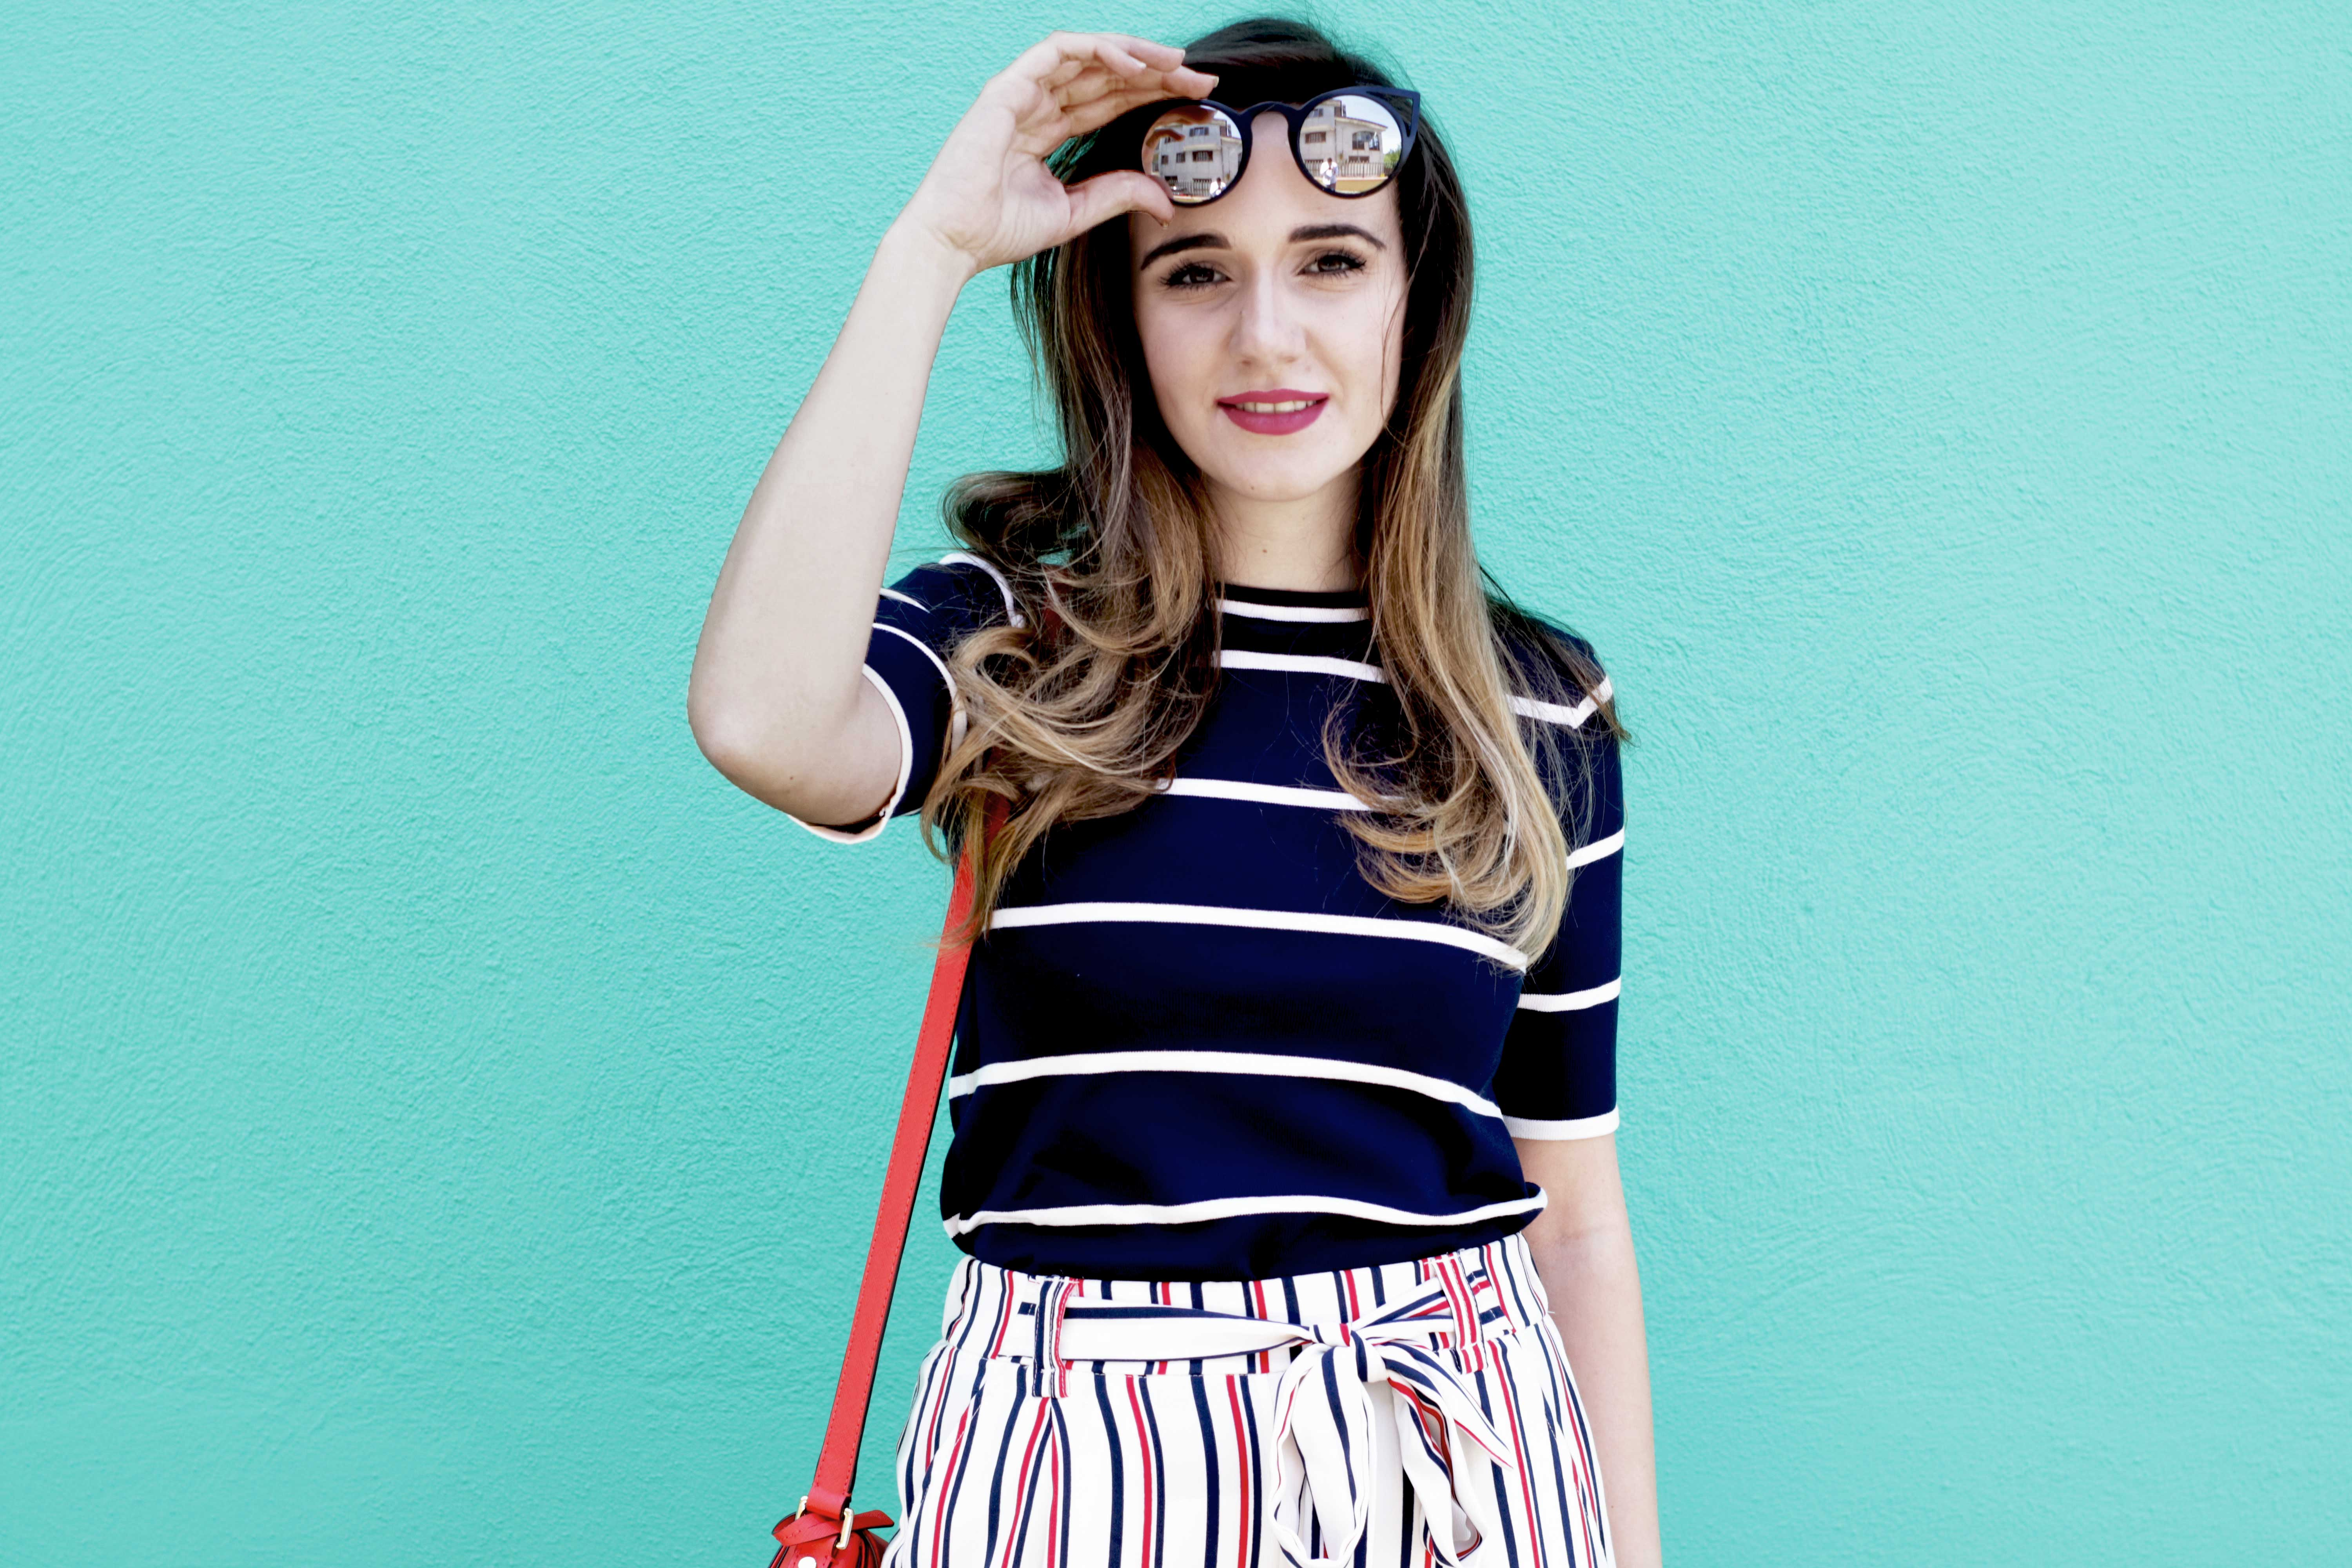 striped-outfit-2